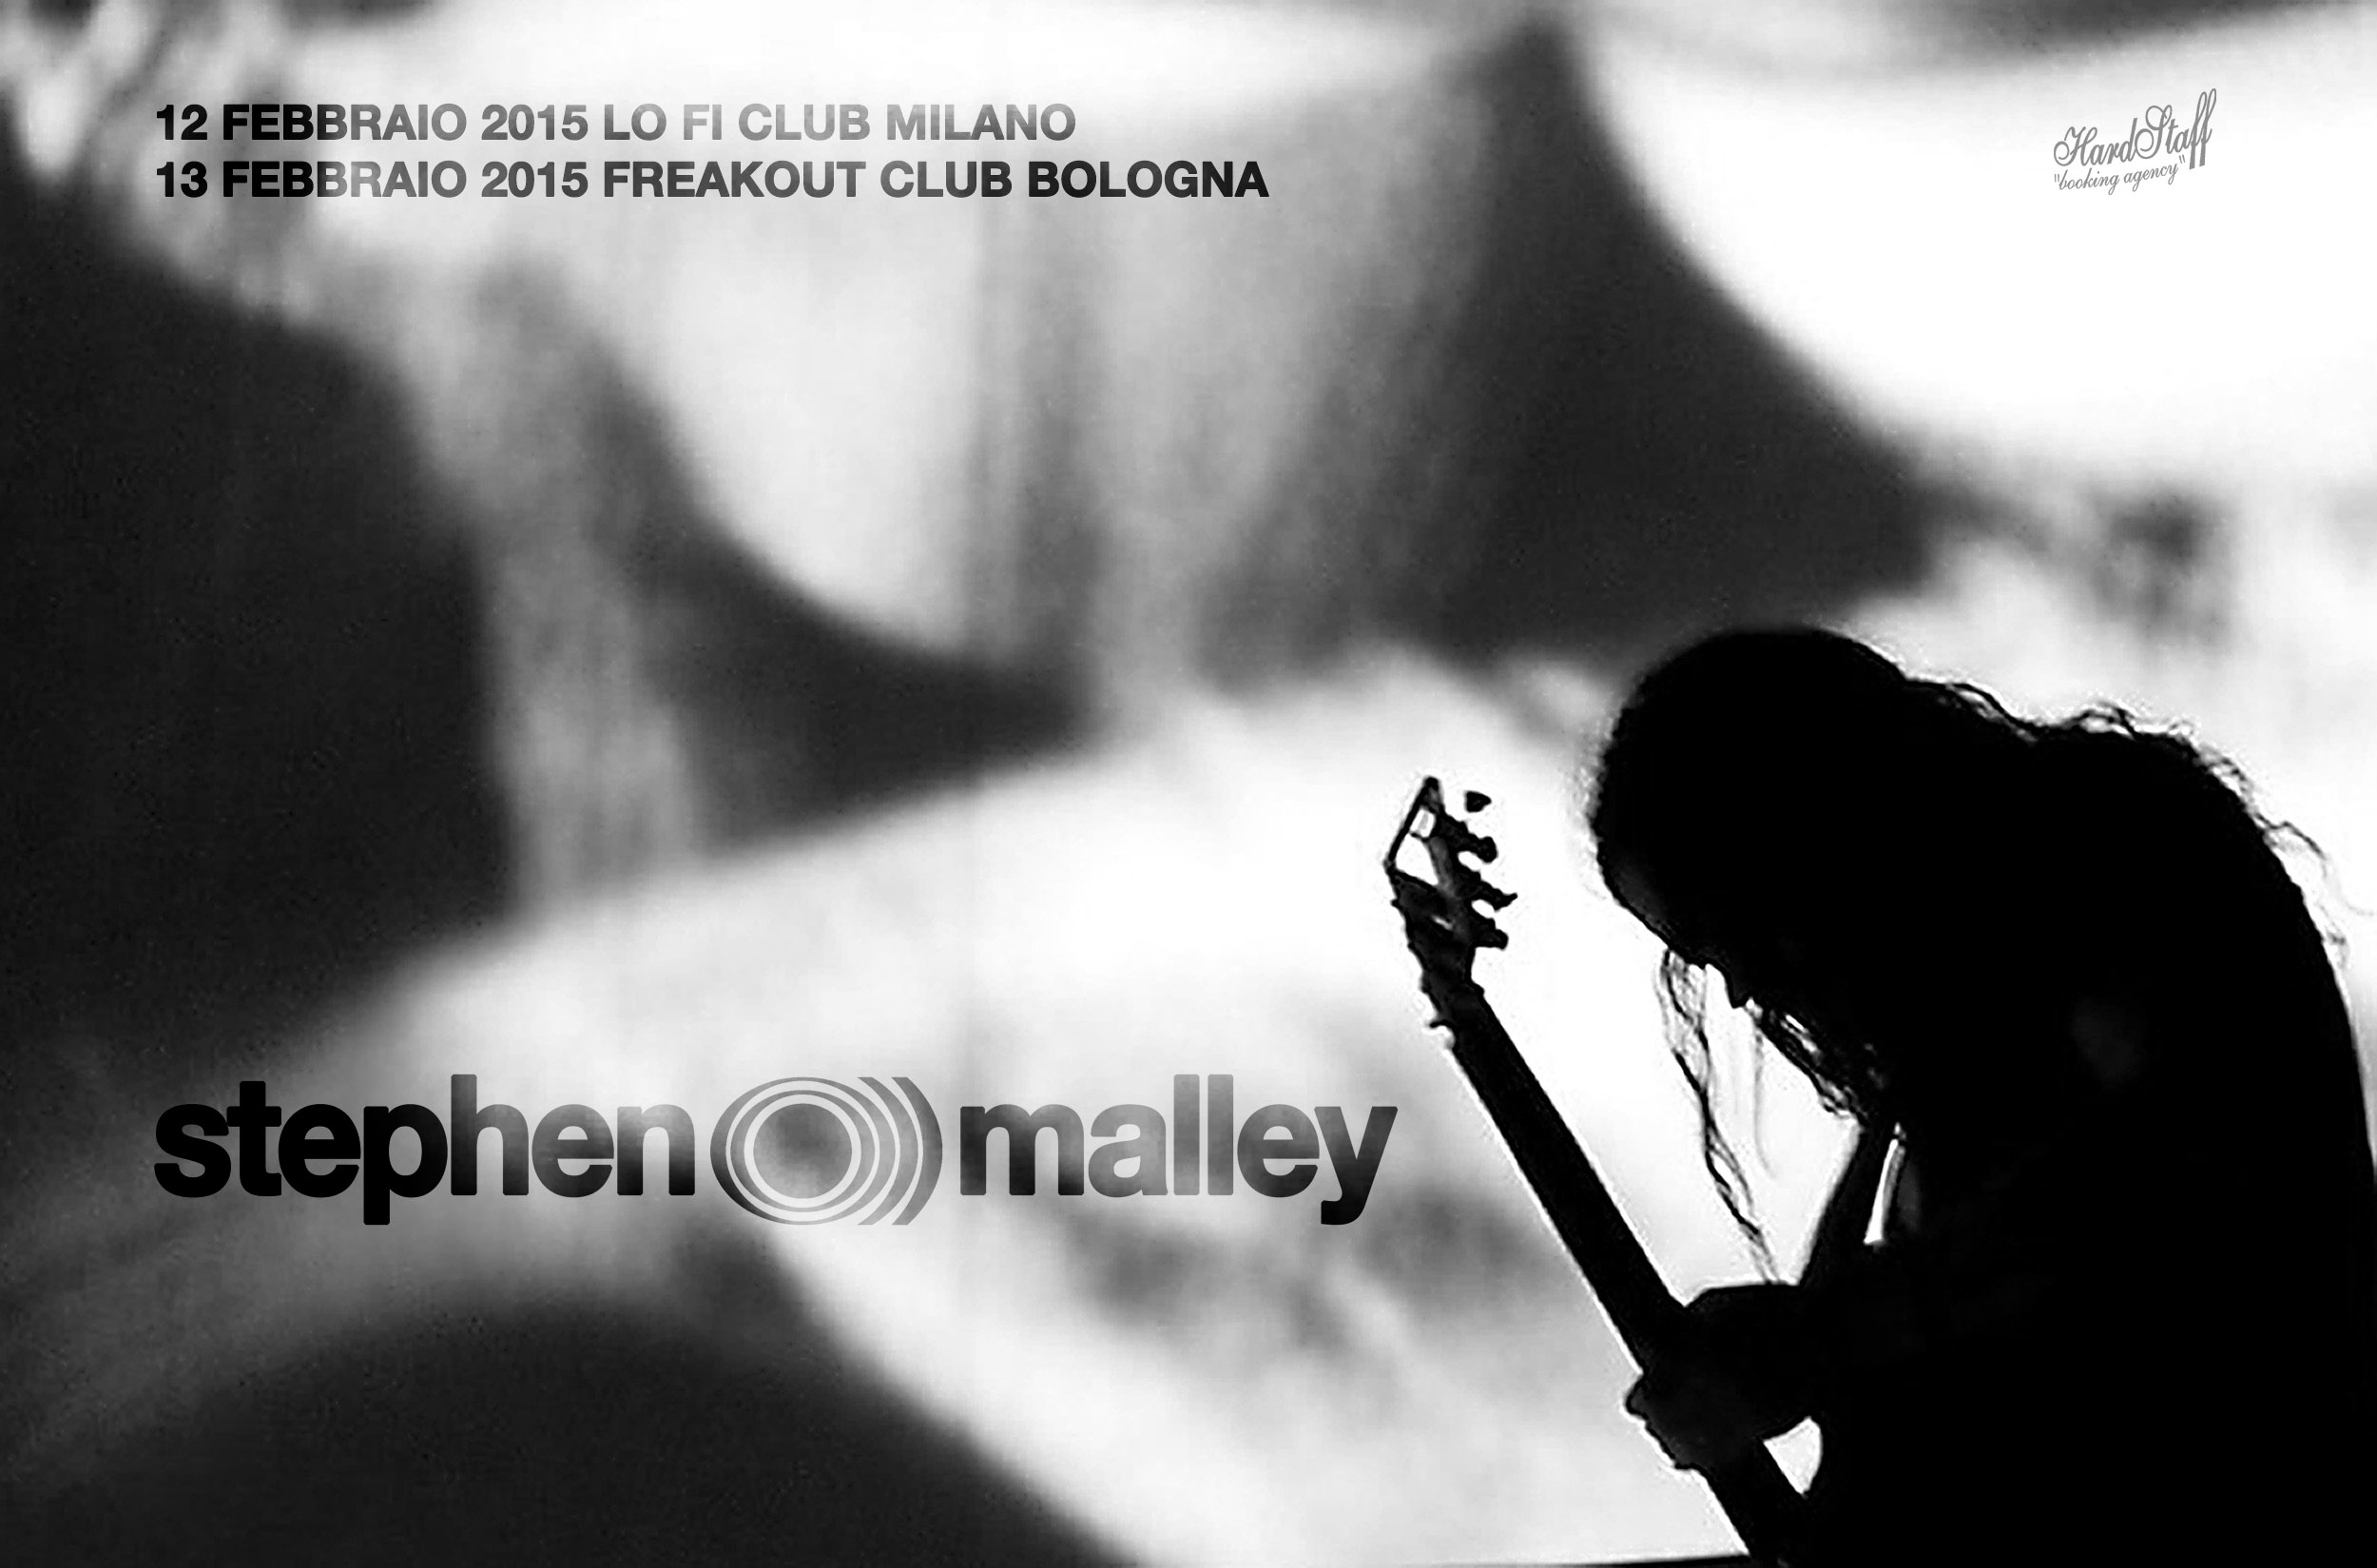 Stephen O'Malley (solo) @ LO FI Club